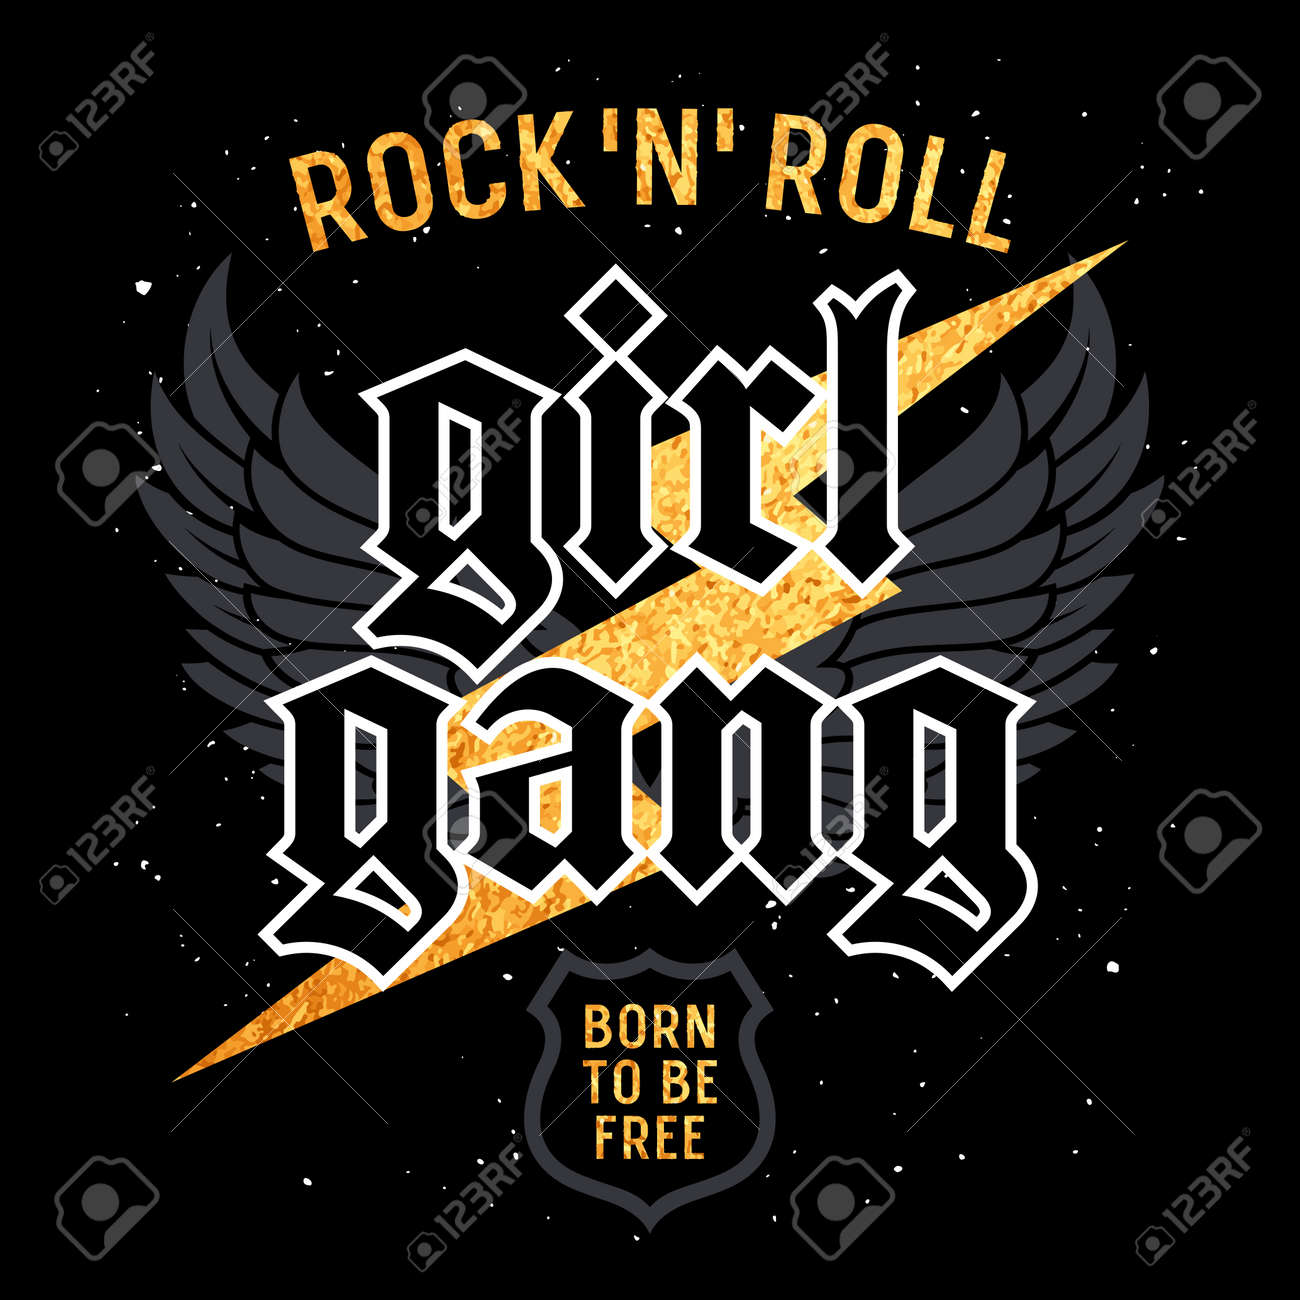 Rock and Roll Girl Gang graphic design for t-shirt, Fashion slogan